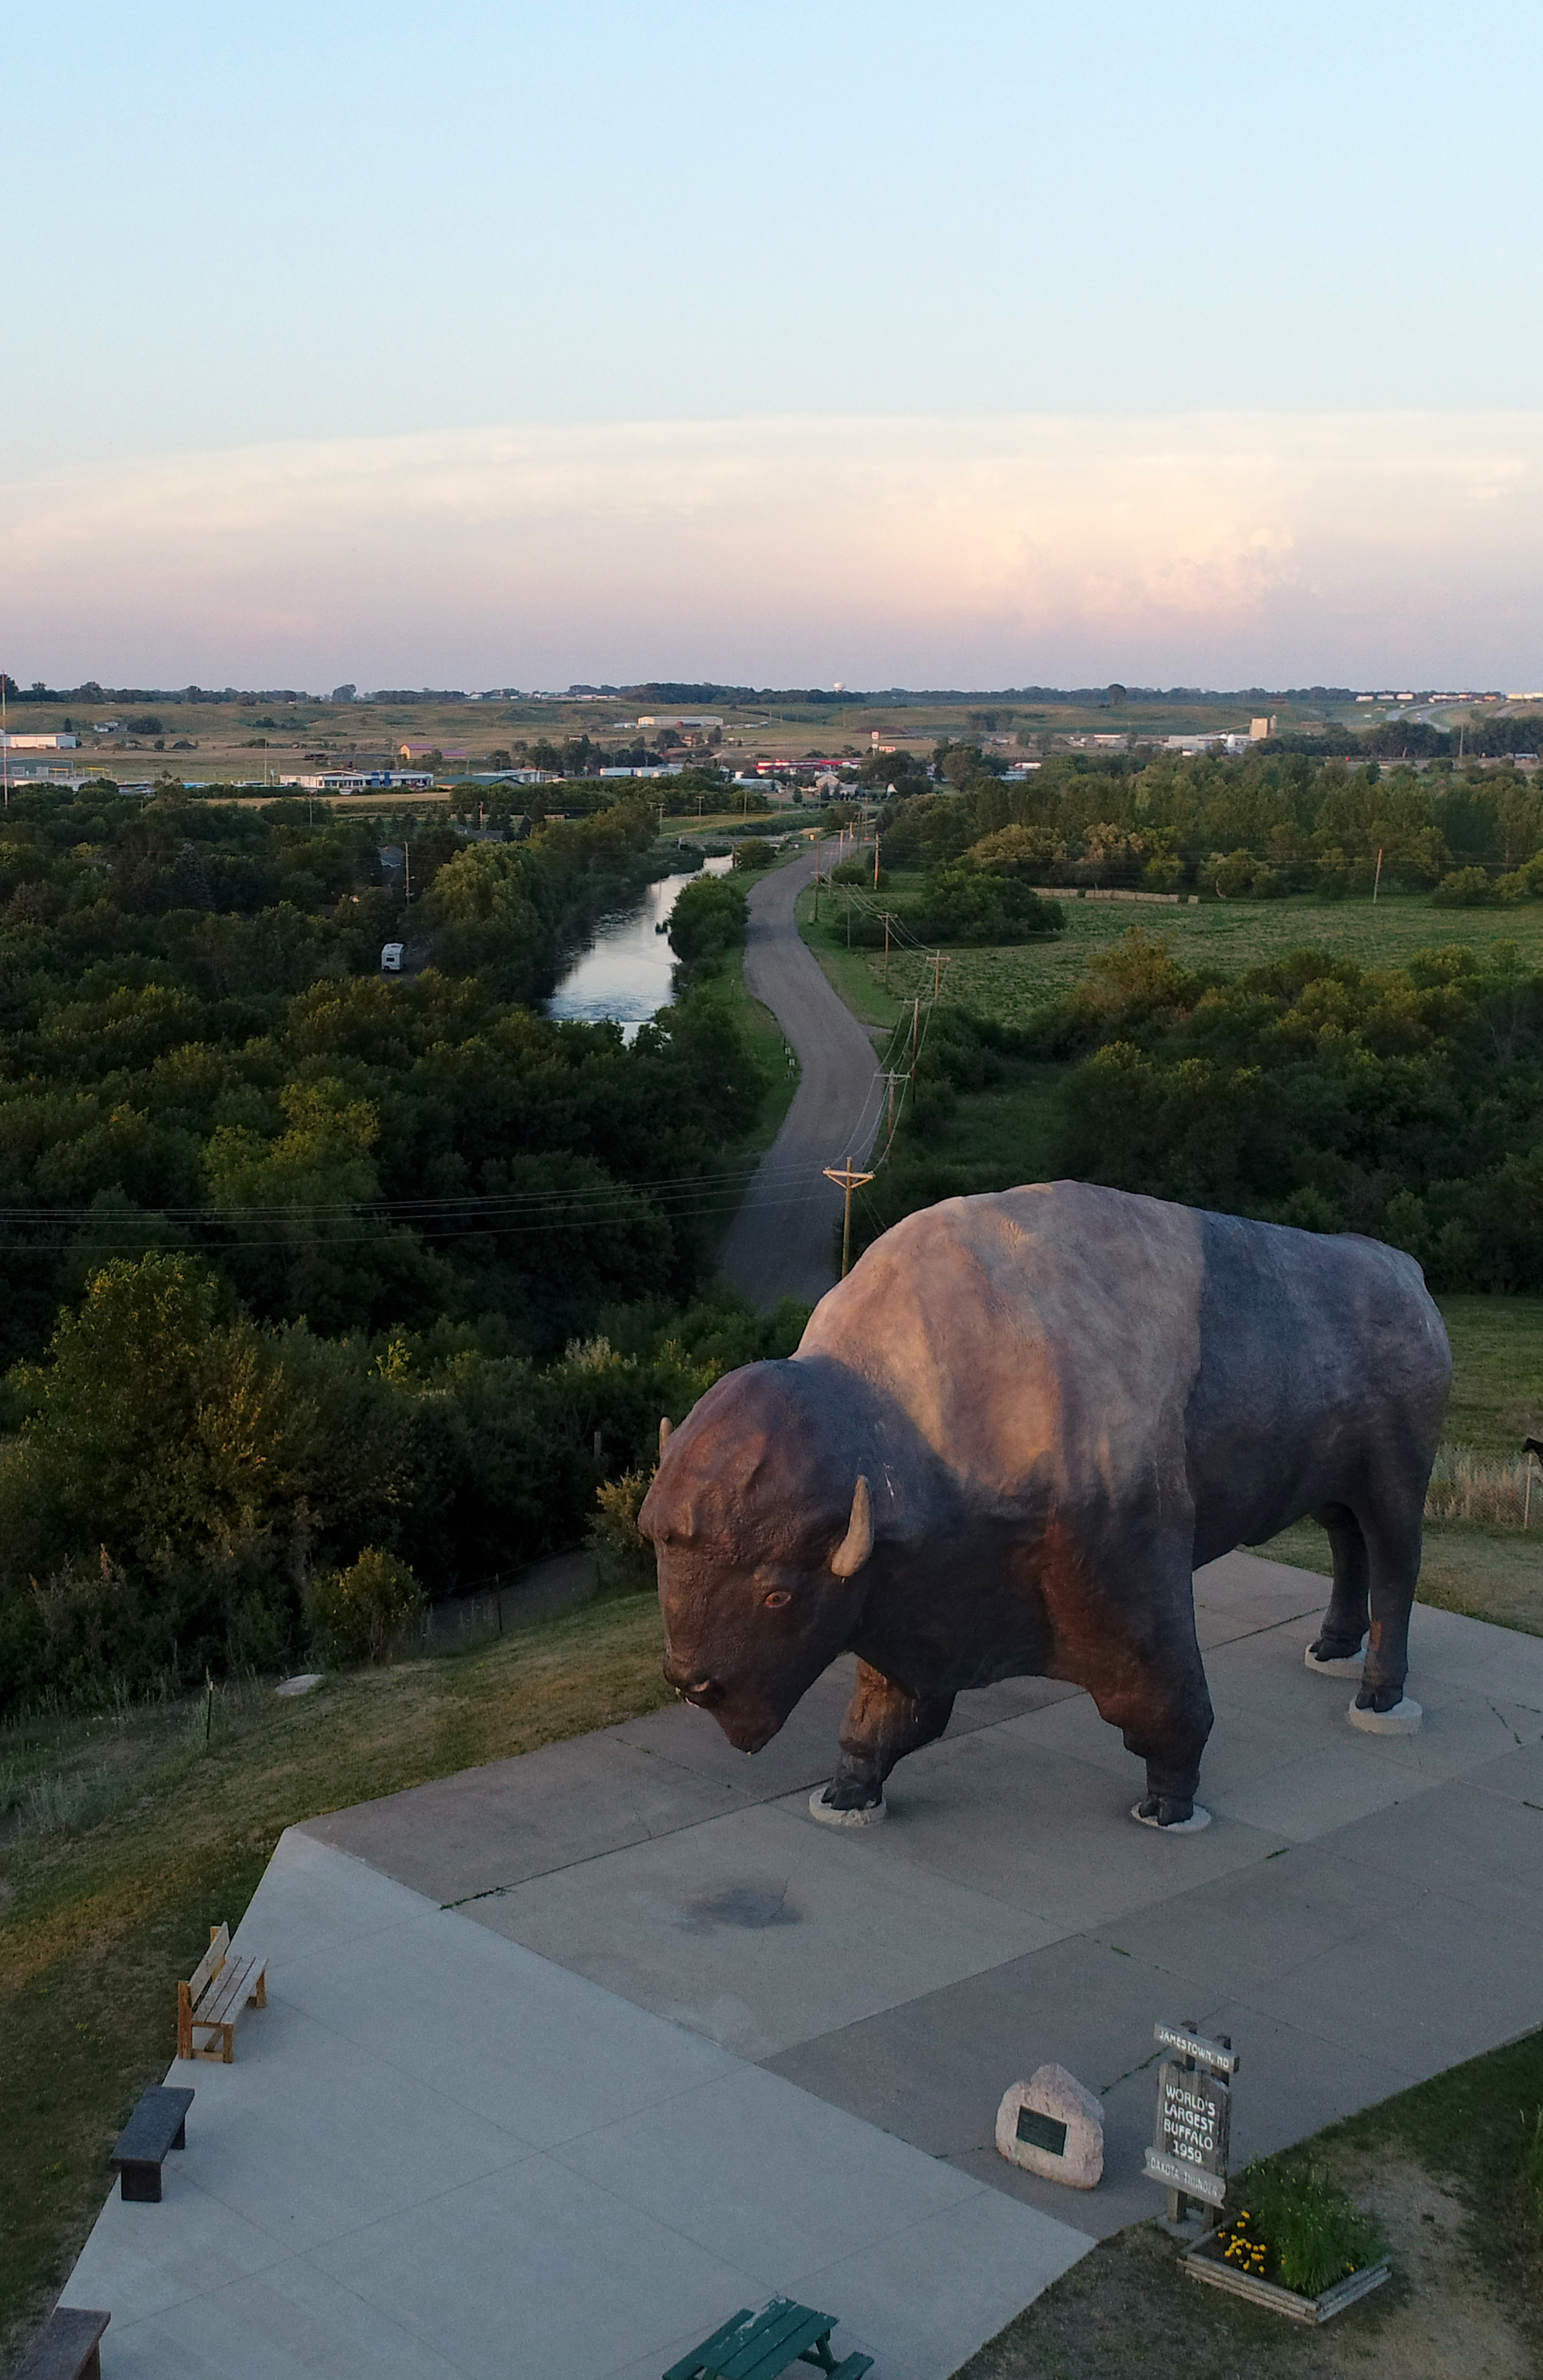 The World's Largest Buffalo with the James River flowing behind it.